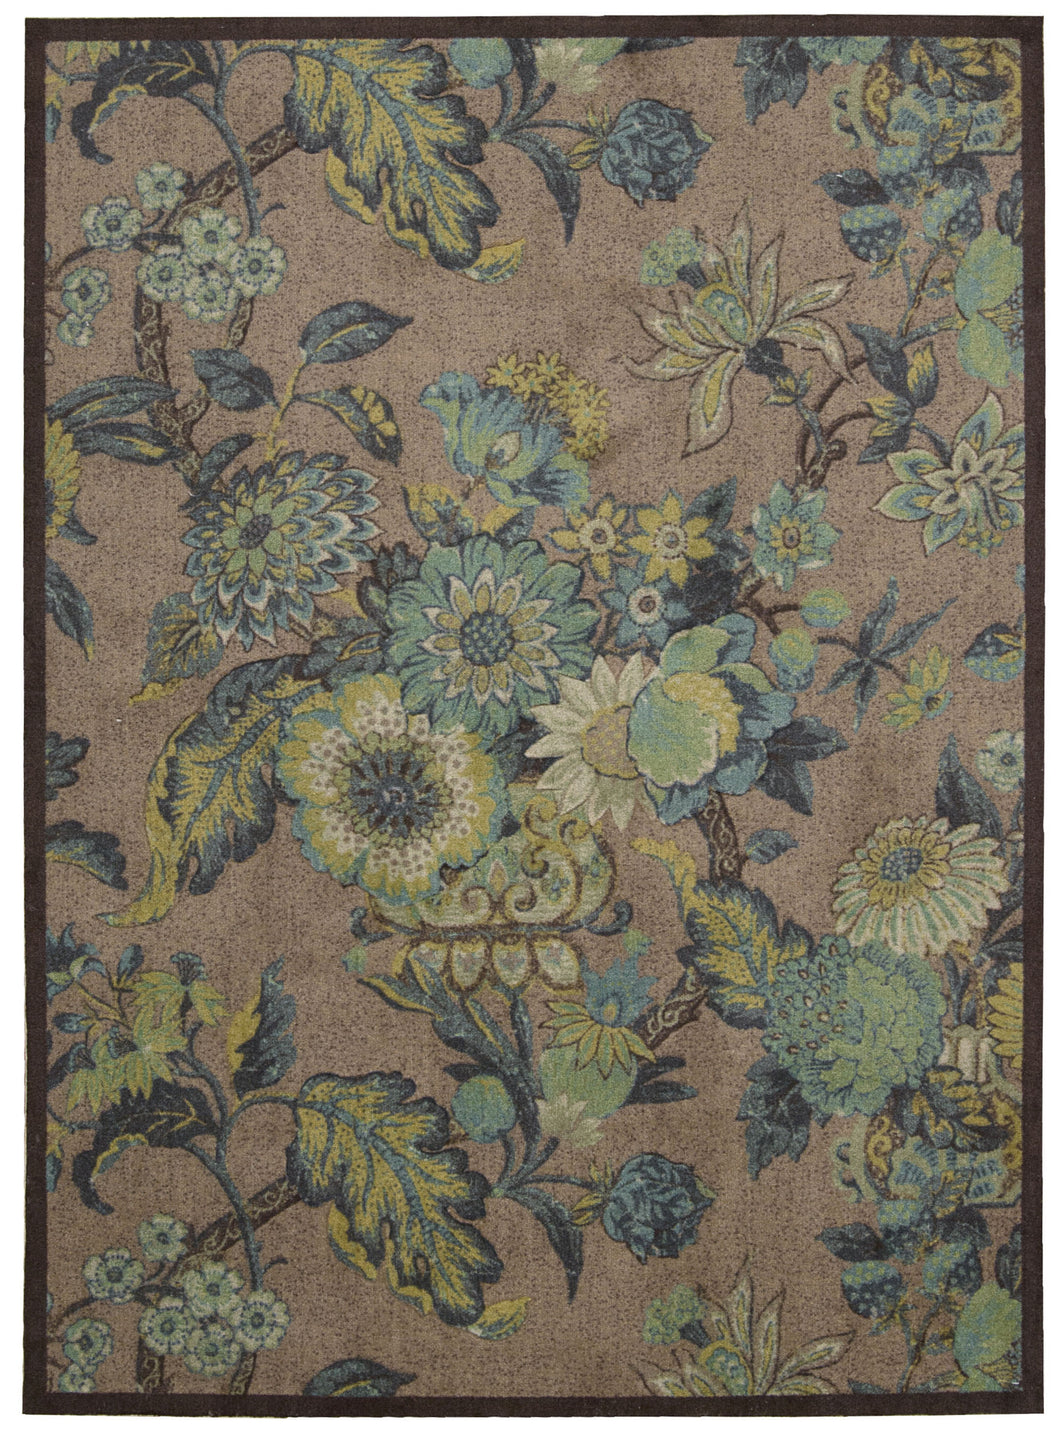 Waverly Artisanal Delight Graceful Garden Blue Jay Area Rug By Nourison WAD20 BLJAY